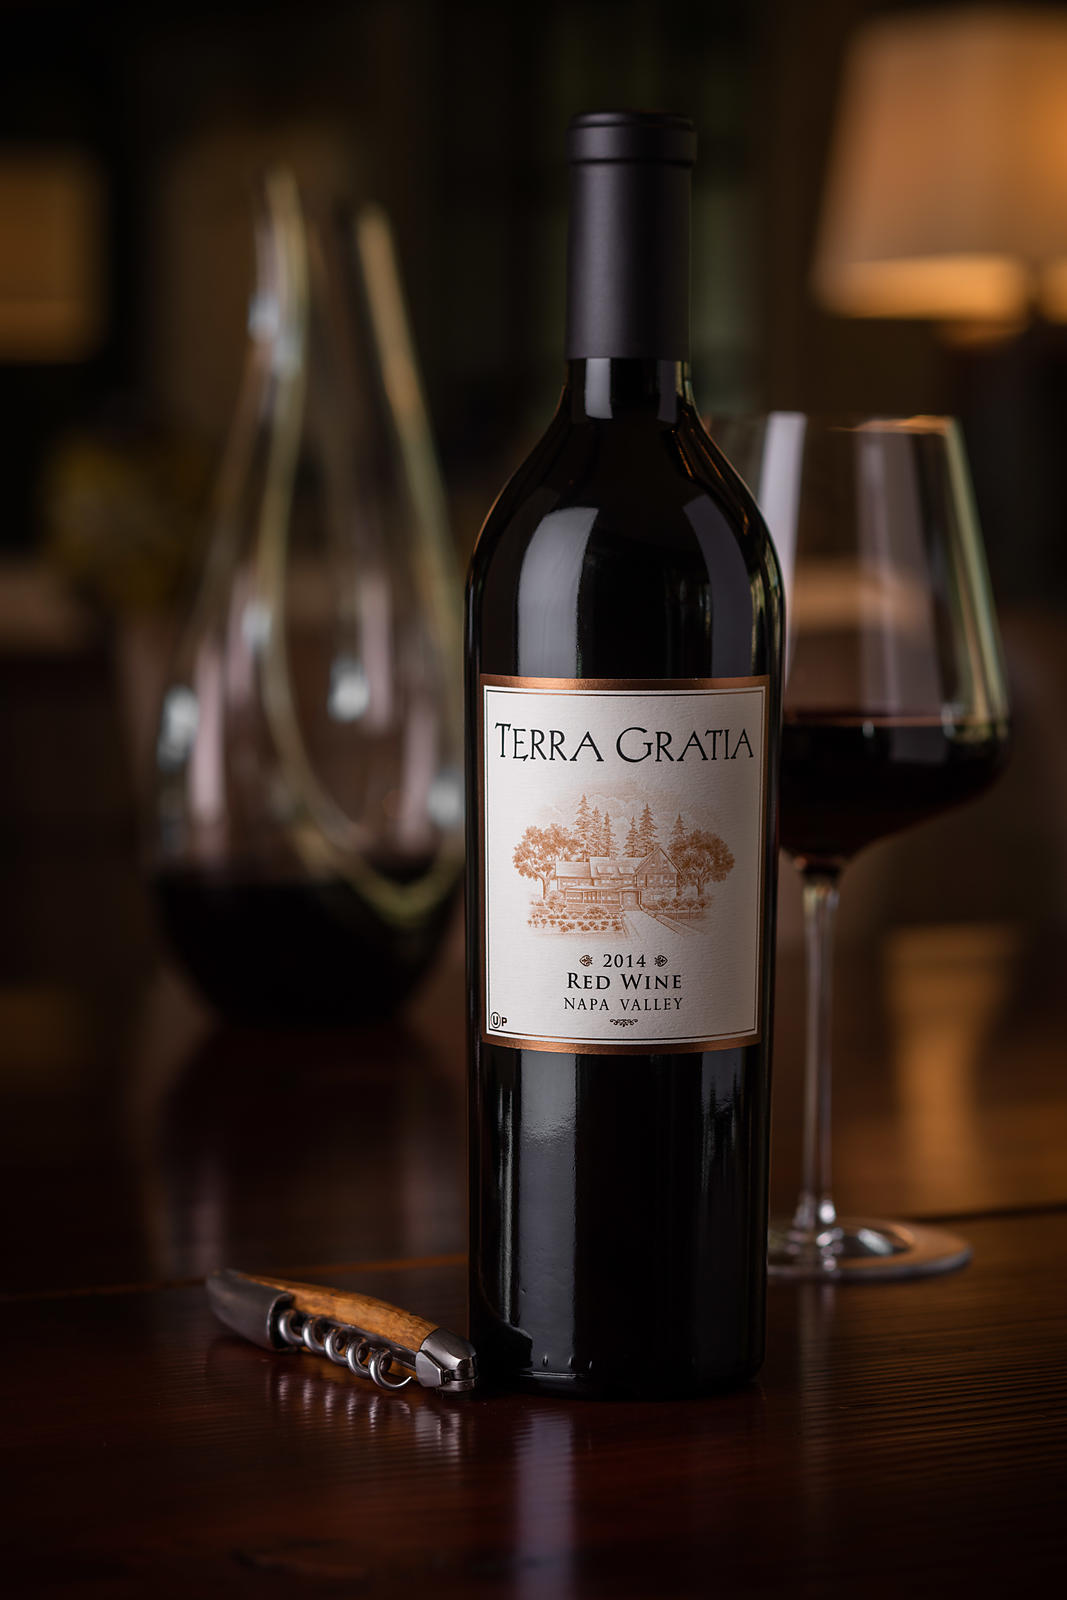 Commercial photography for luxury wine brand in Napa Valley by Jason Tinacci